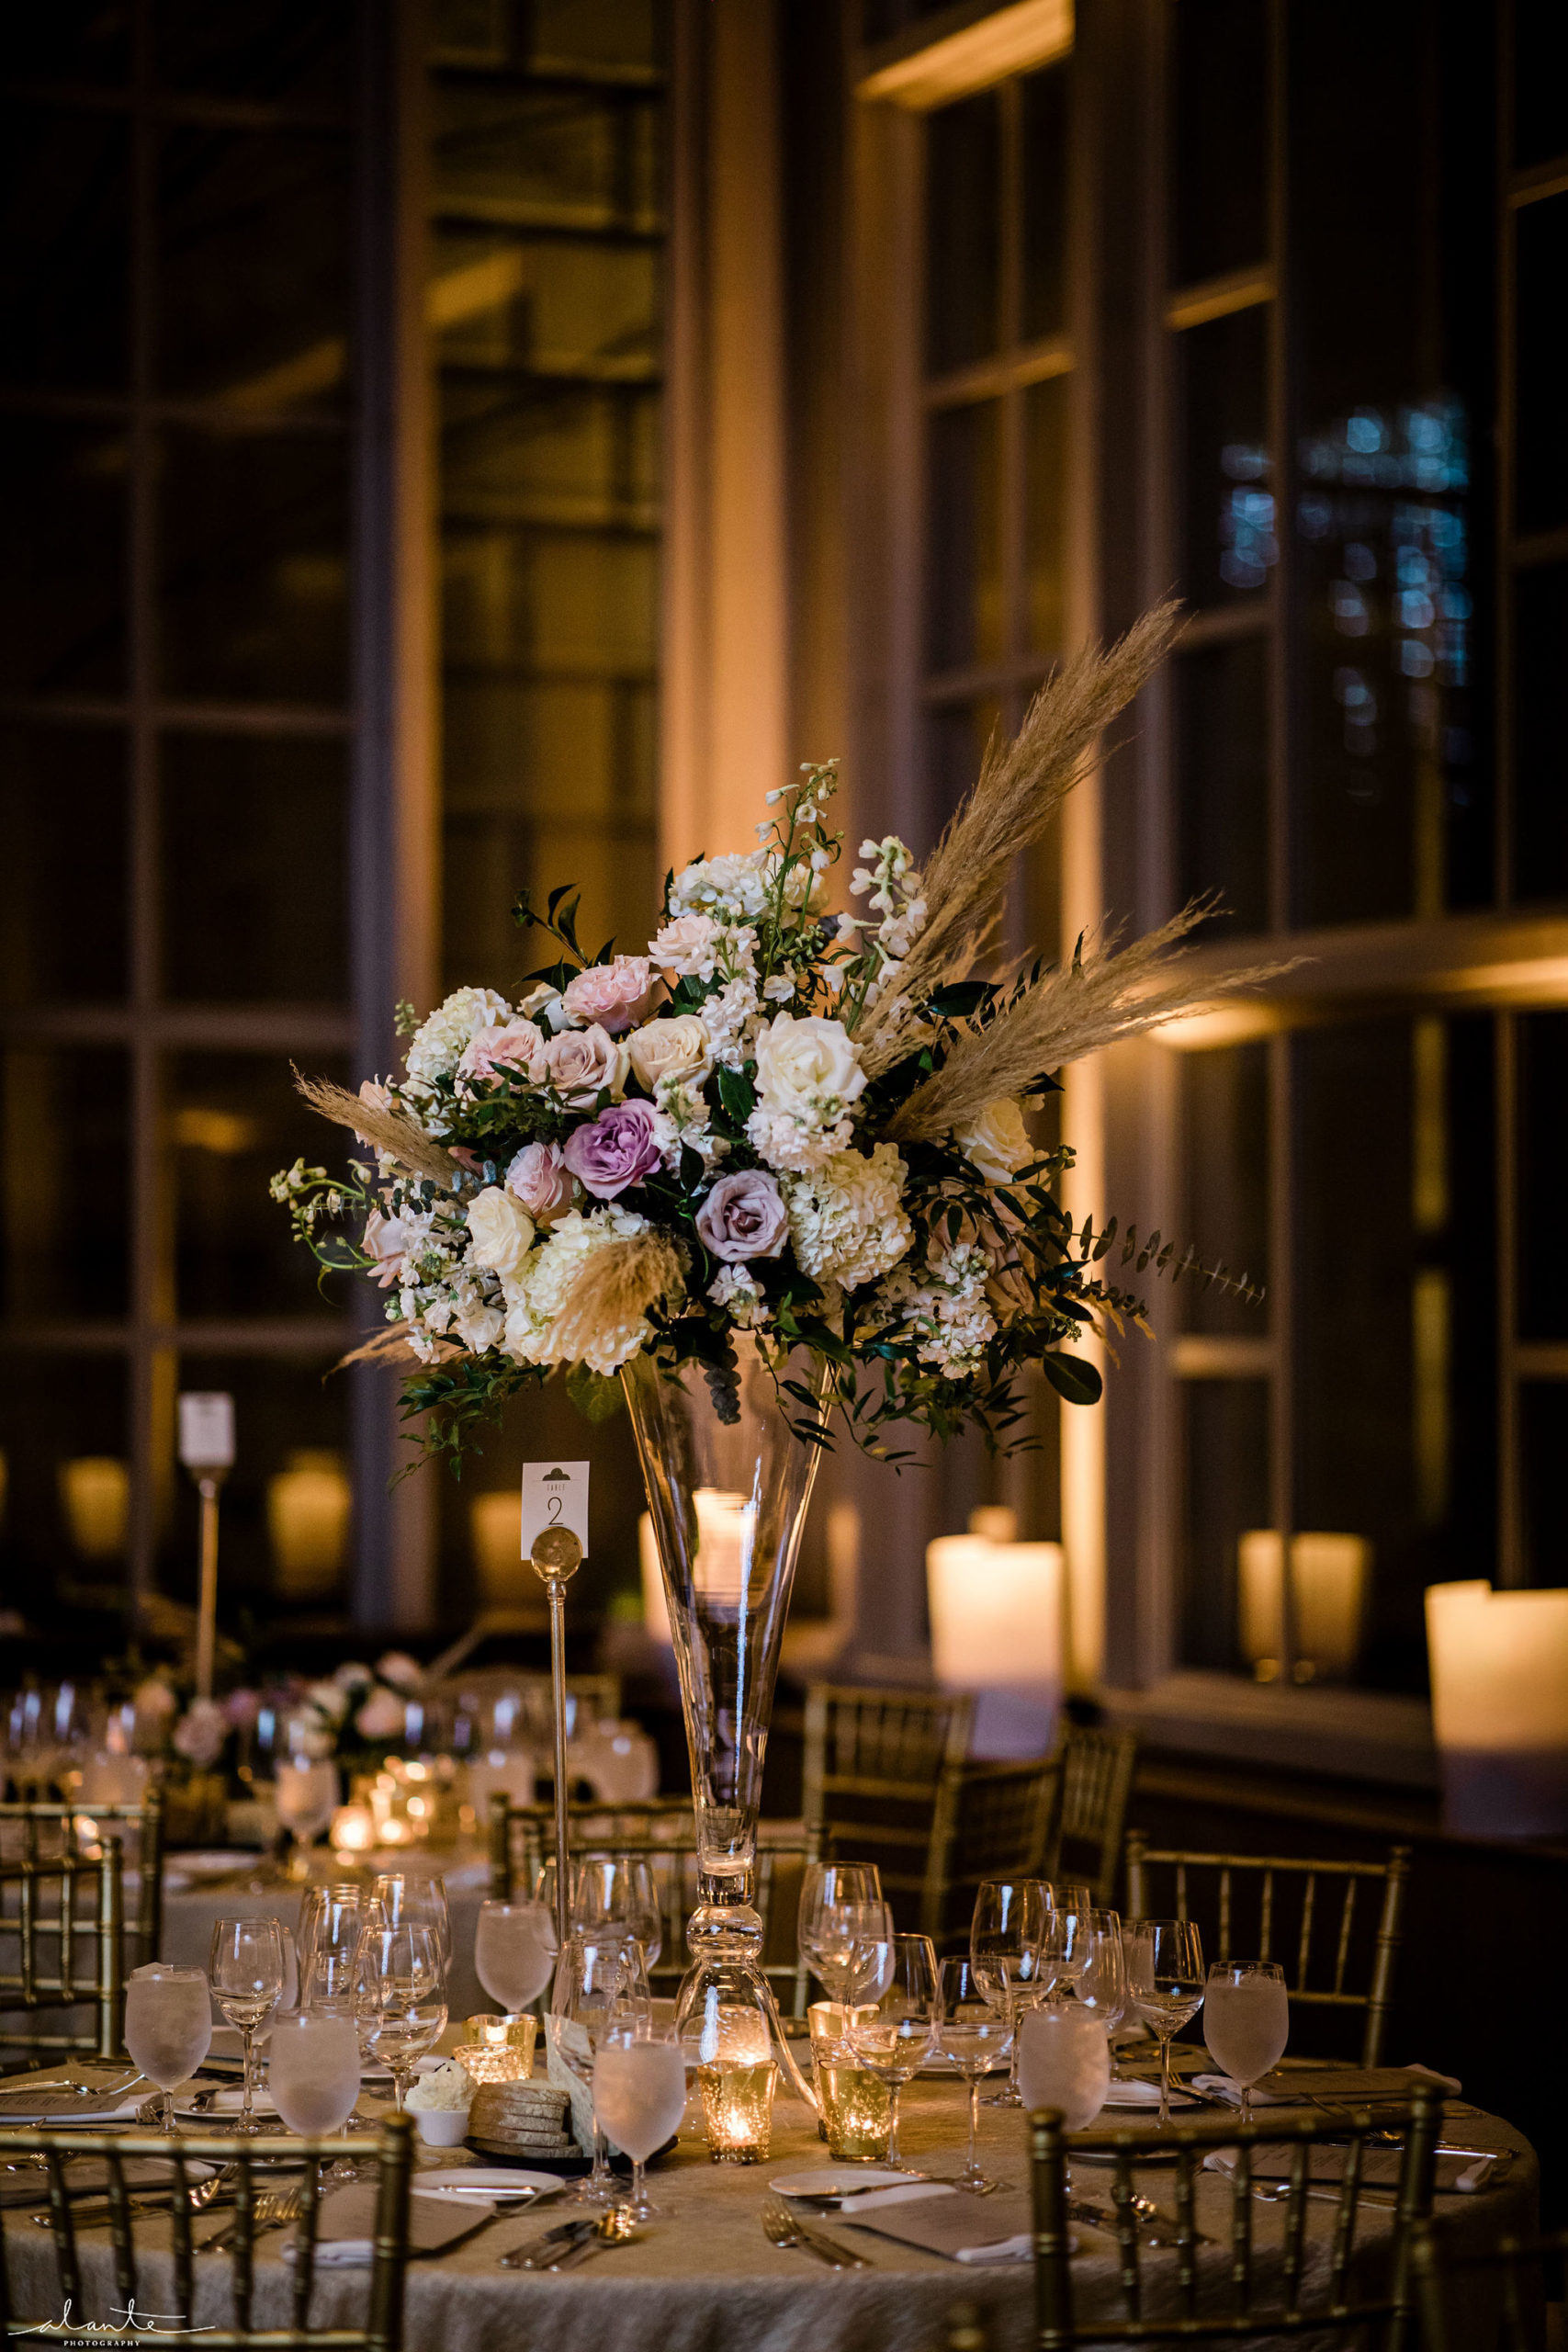 Tall floral centerpieces in white and mauve with pampas grass in a candlelit ballroom with soft uplighting.